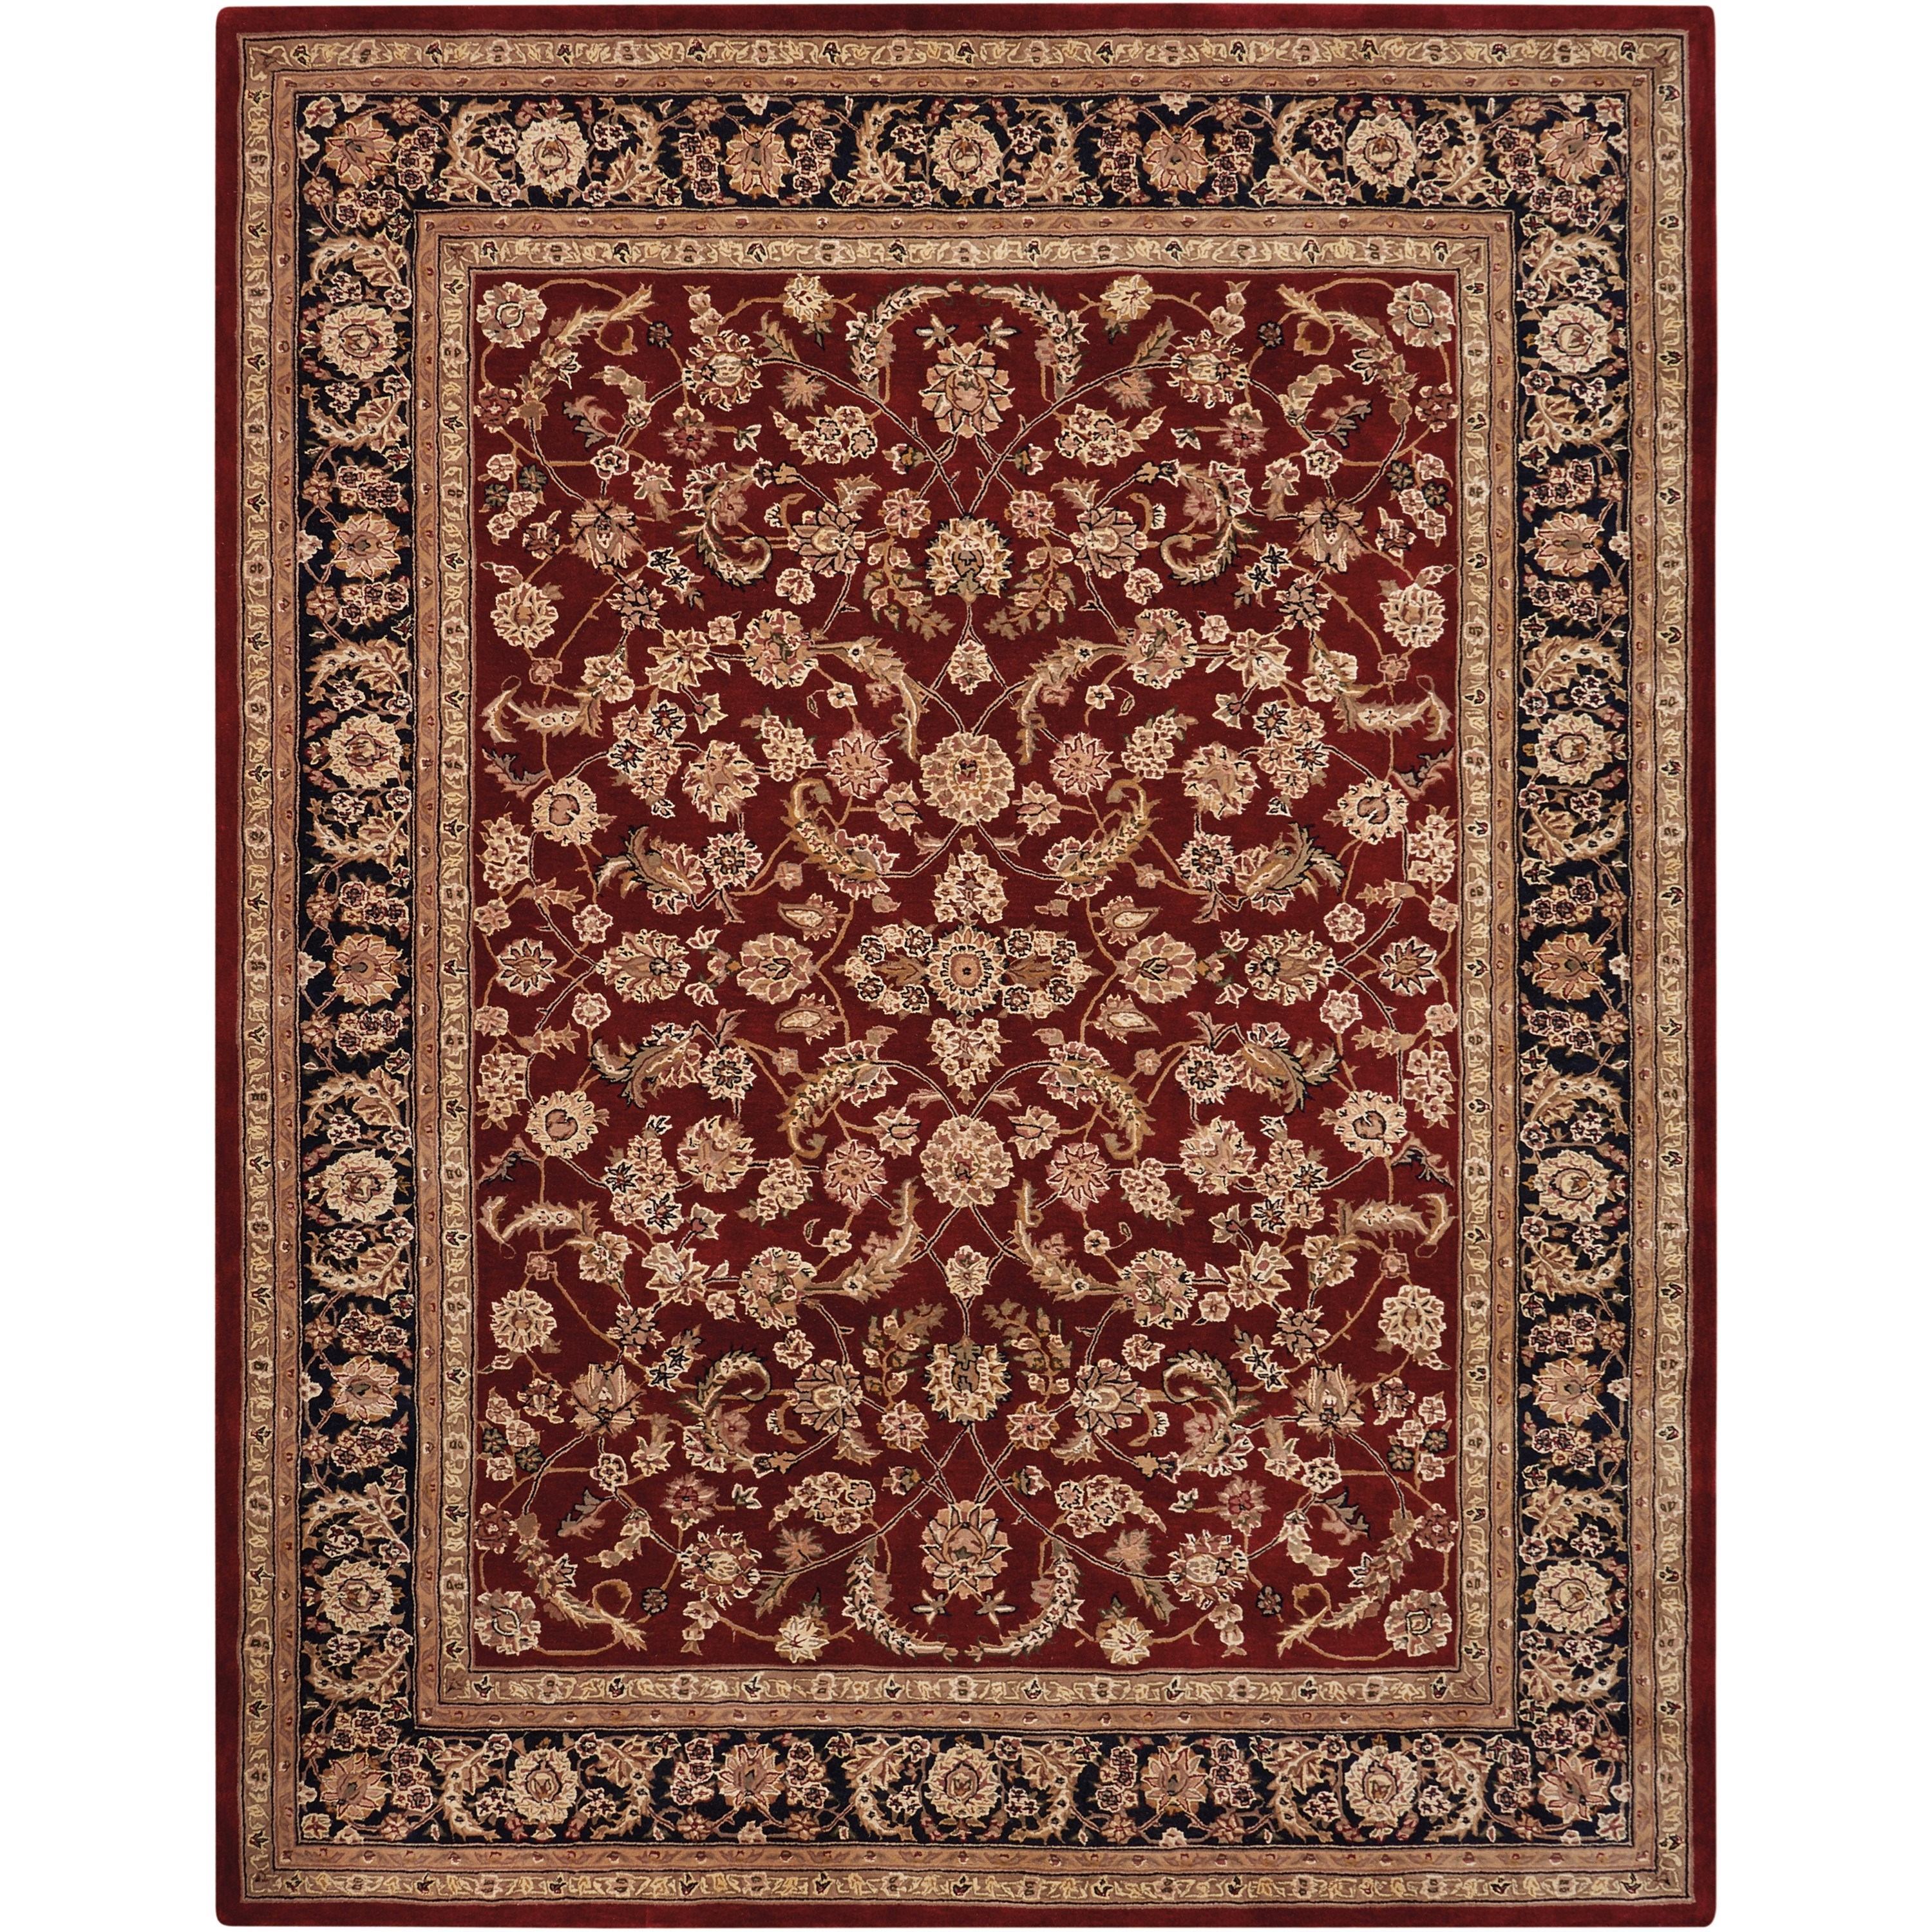 Nourison 2000 2000 2002 Dark Red Multicolor 8'x10'  Area R by Nourison at Home Collections Furniture